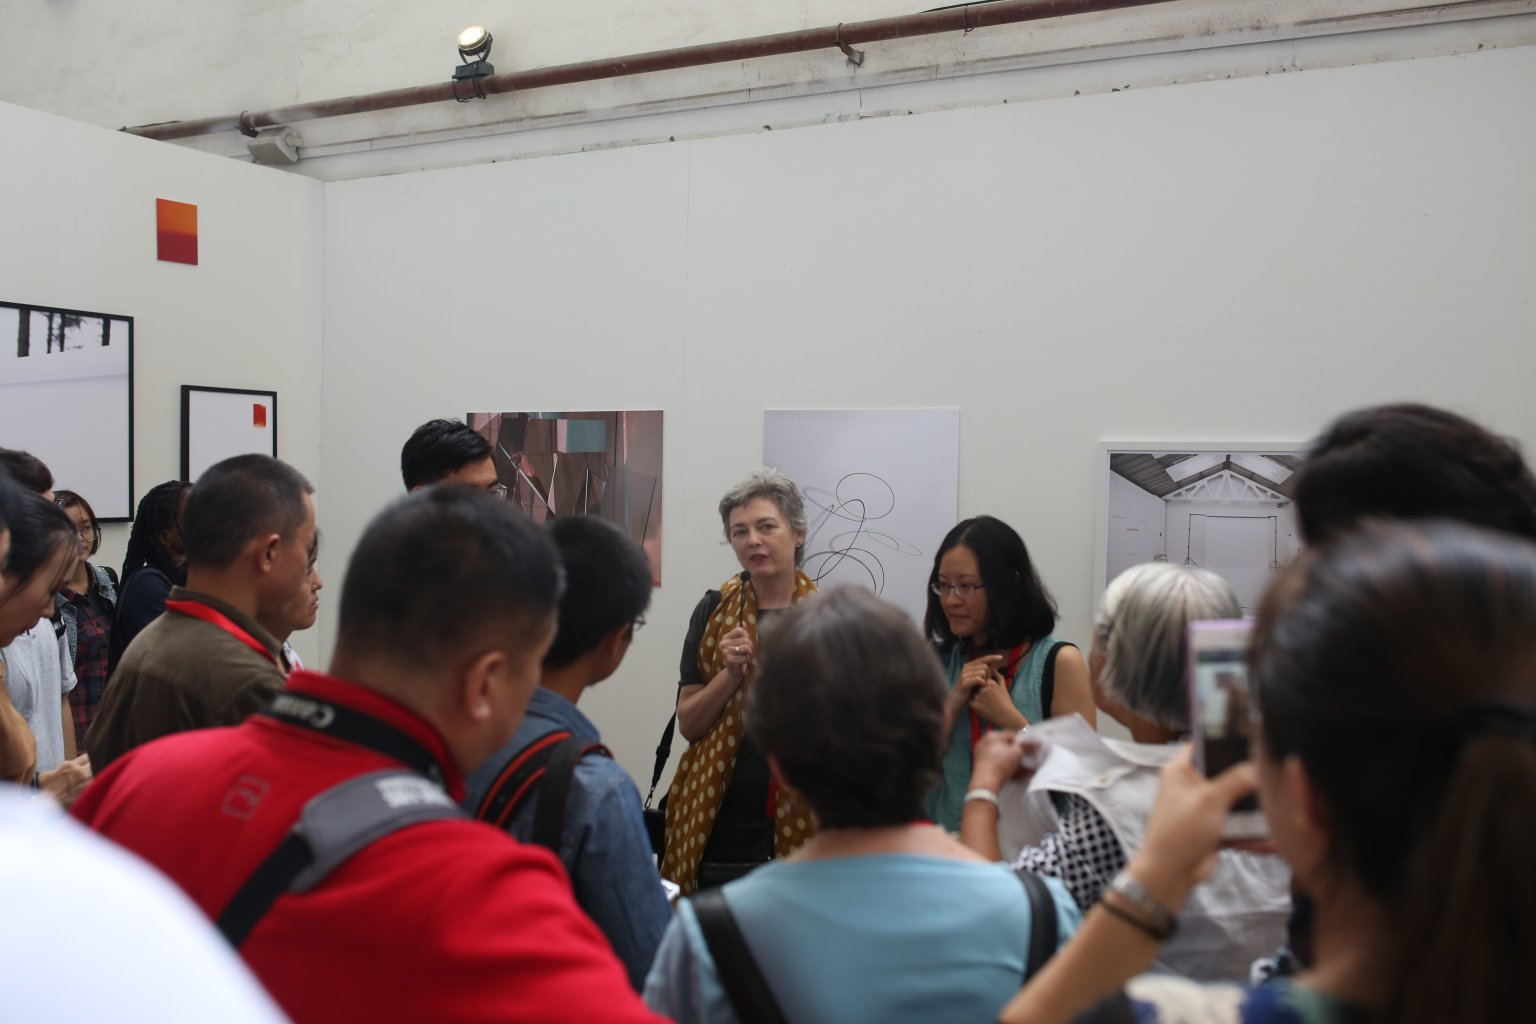 Curator talk, PIP, Pingyao, China 2016